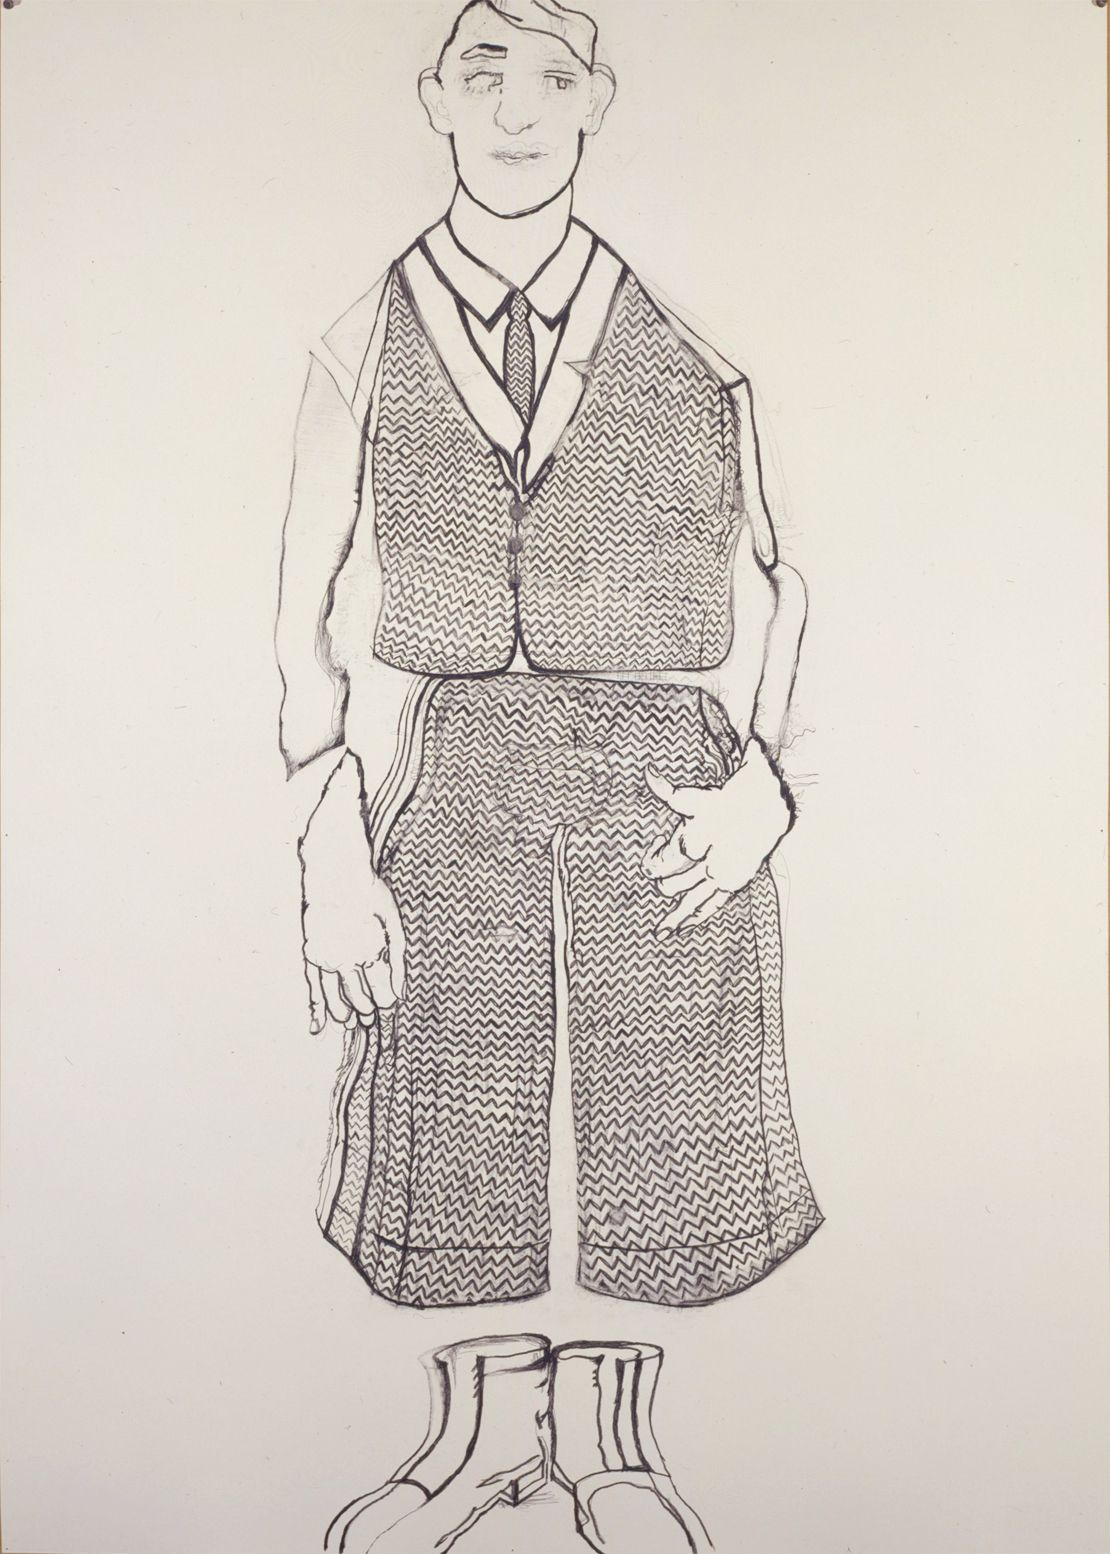 a drawing of a boy for sale in a contemporary art gallery by Hannah van Bart